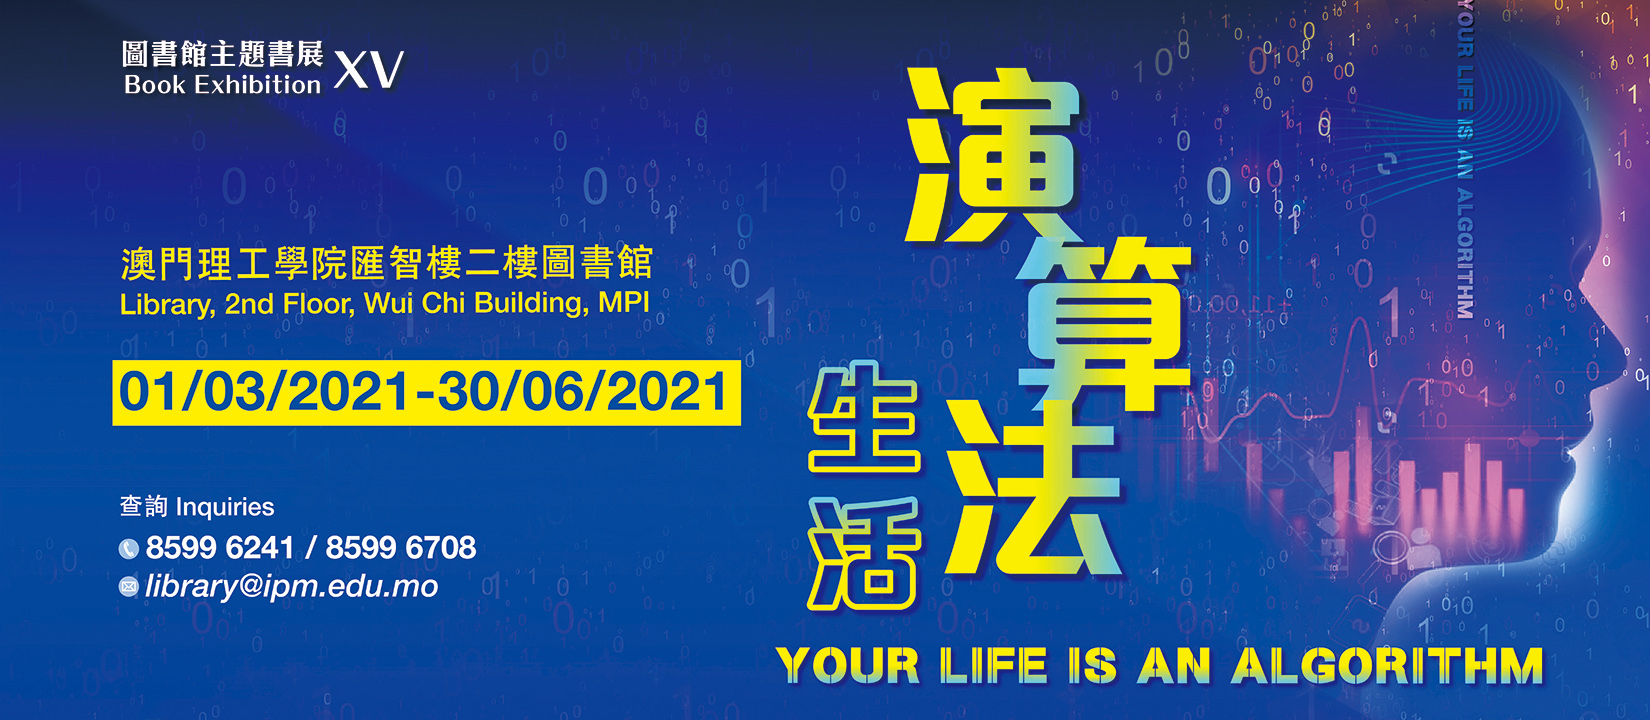 BOOK EXHIBITION 15 - YOUR LIFE IS AN ALGORITHM